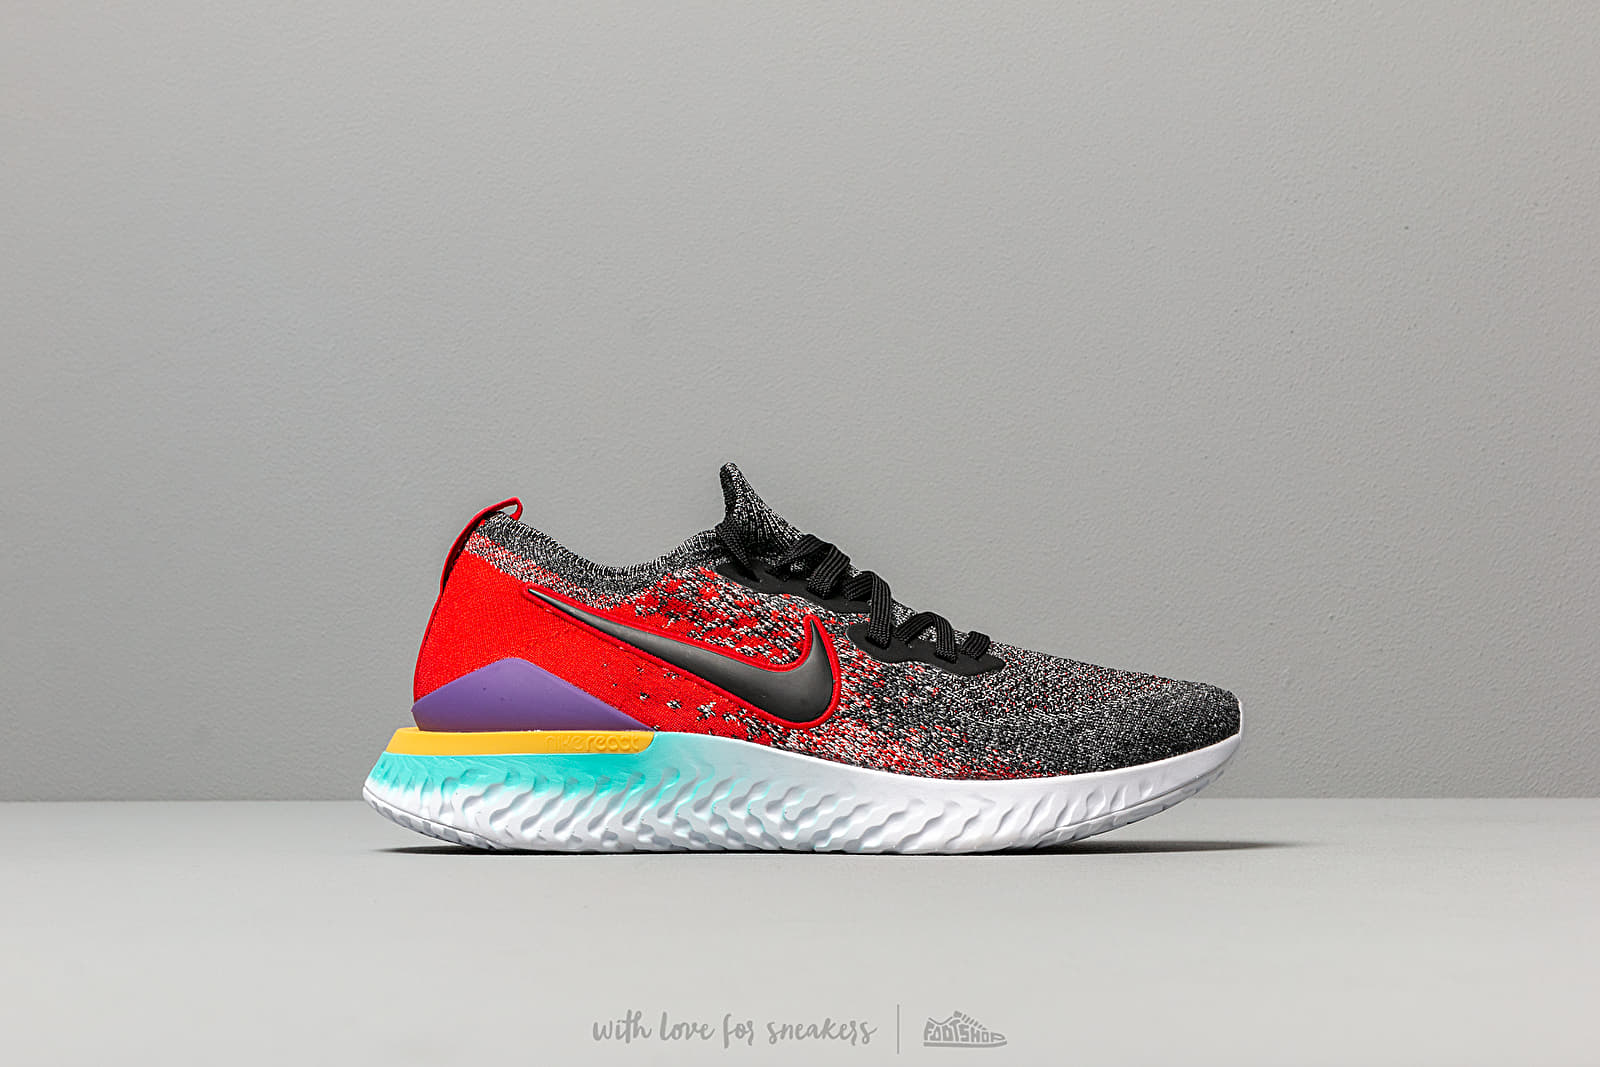 bed836d1e Nike Epic React Flyknit 2 Black/ Black-Hyper Jade-University Red at a